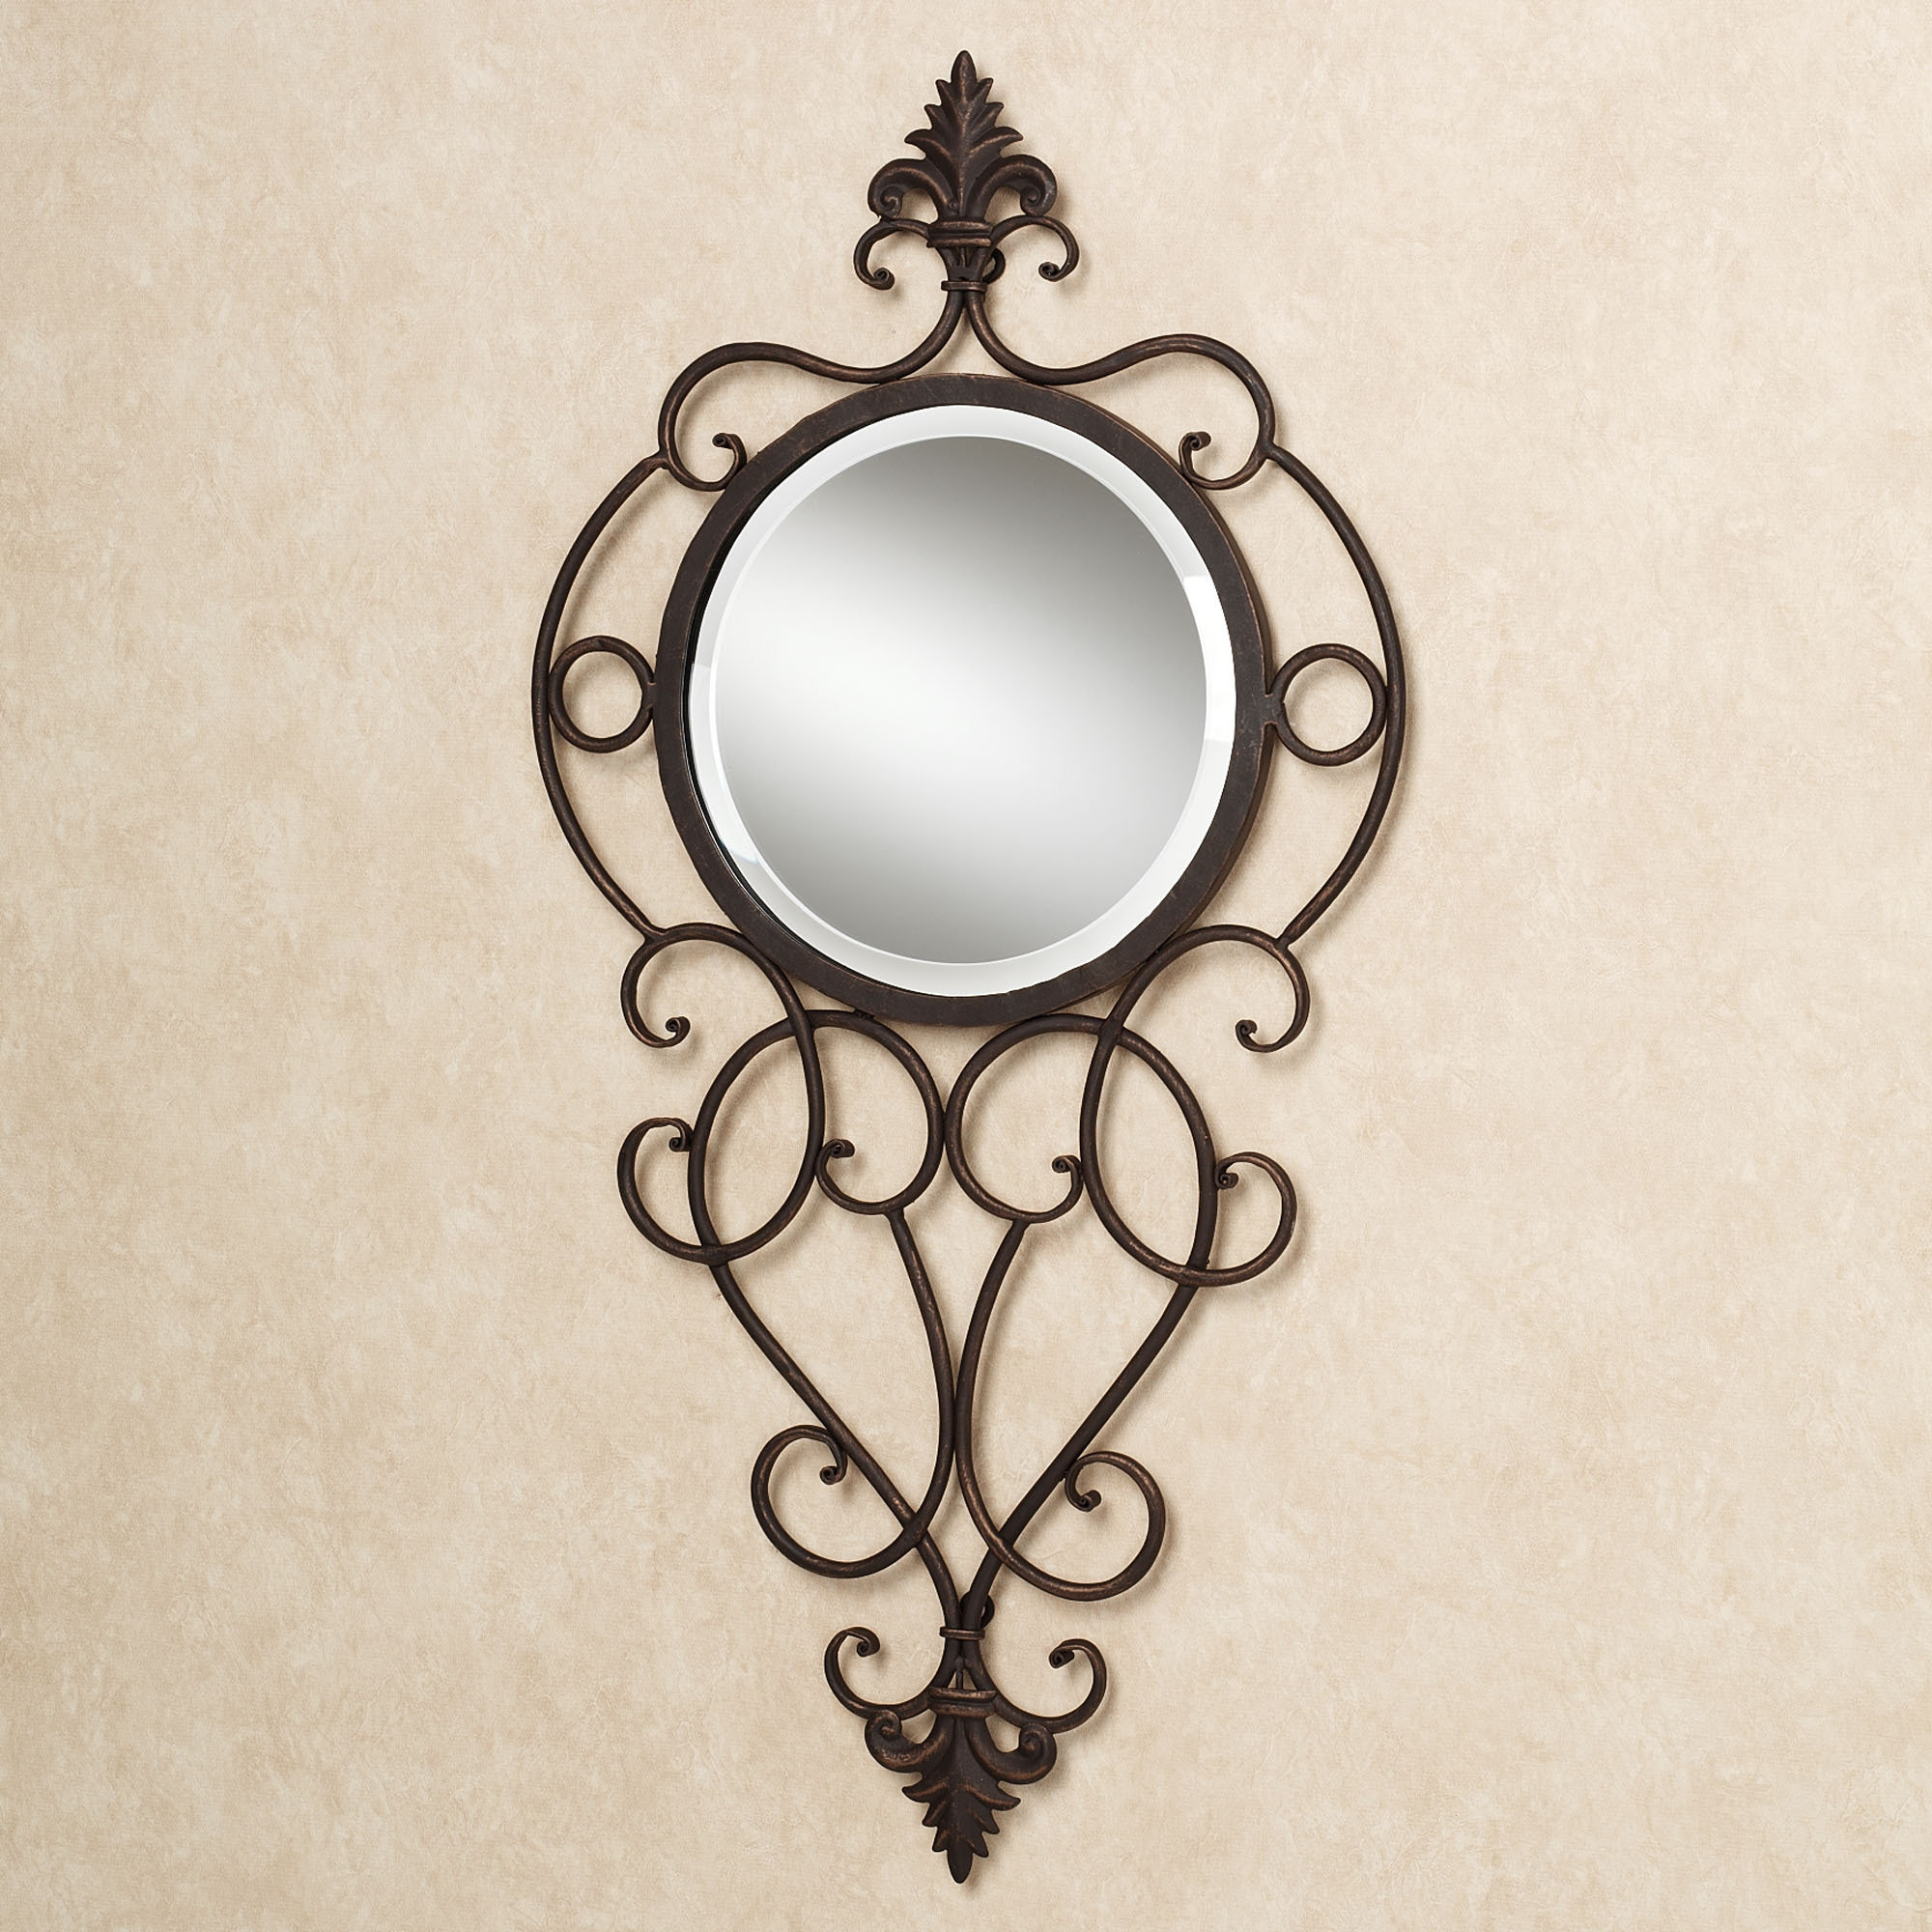 Trendy Antique Wrought Iron Wall Mirror • Bathroom Mirrors And Wall In Wrought Iron Wall Mirrors (View 8 of 20)